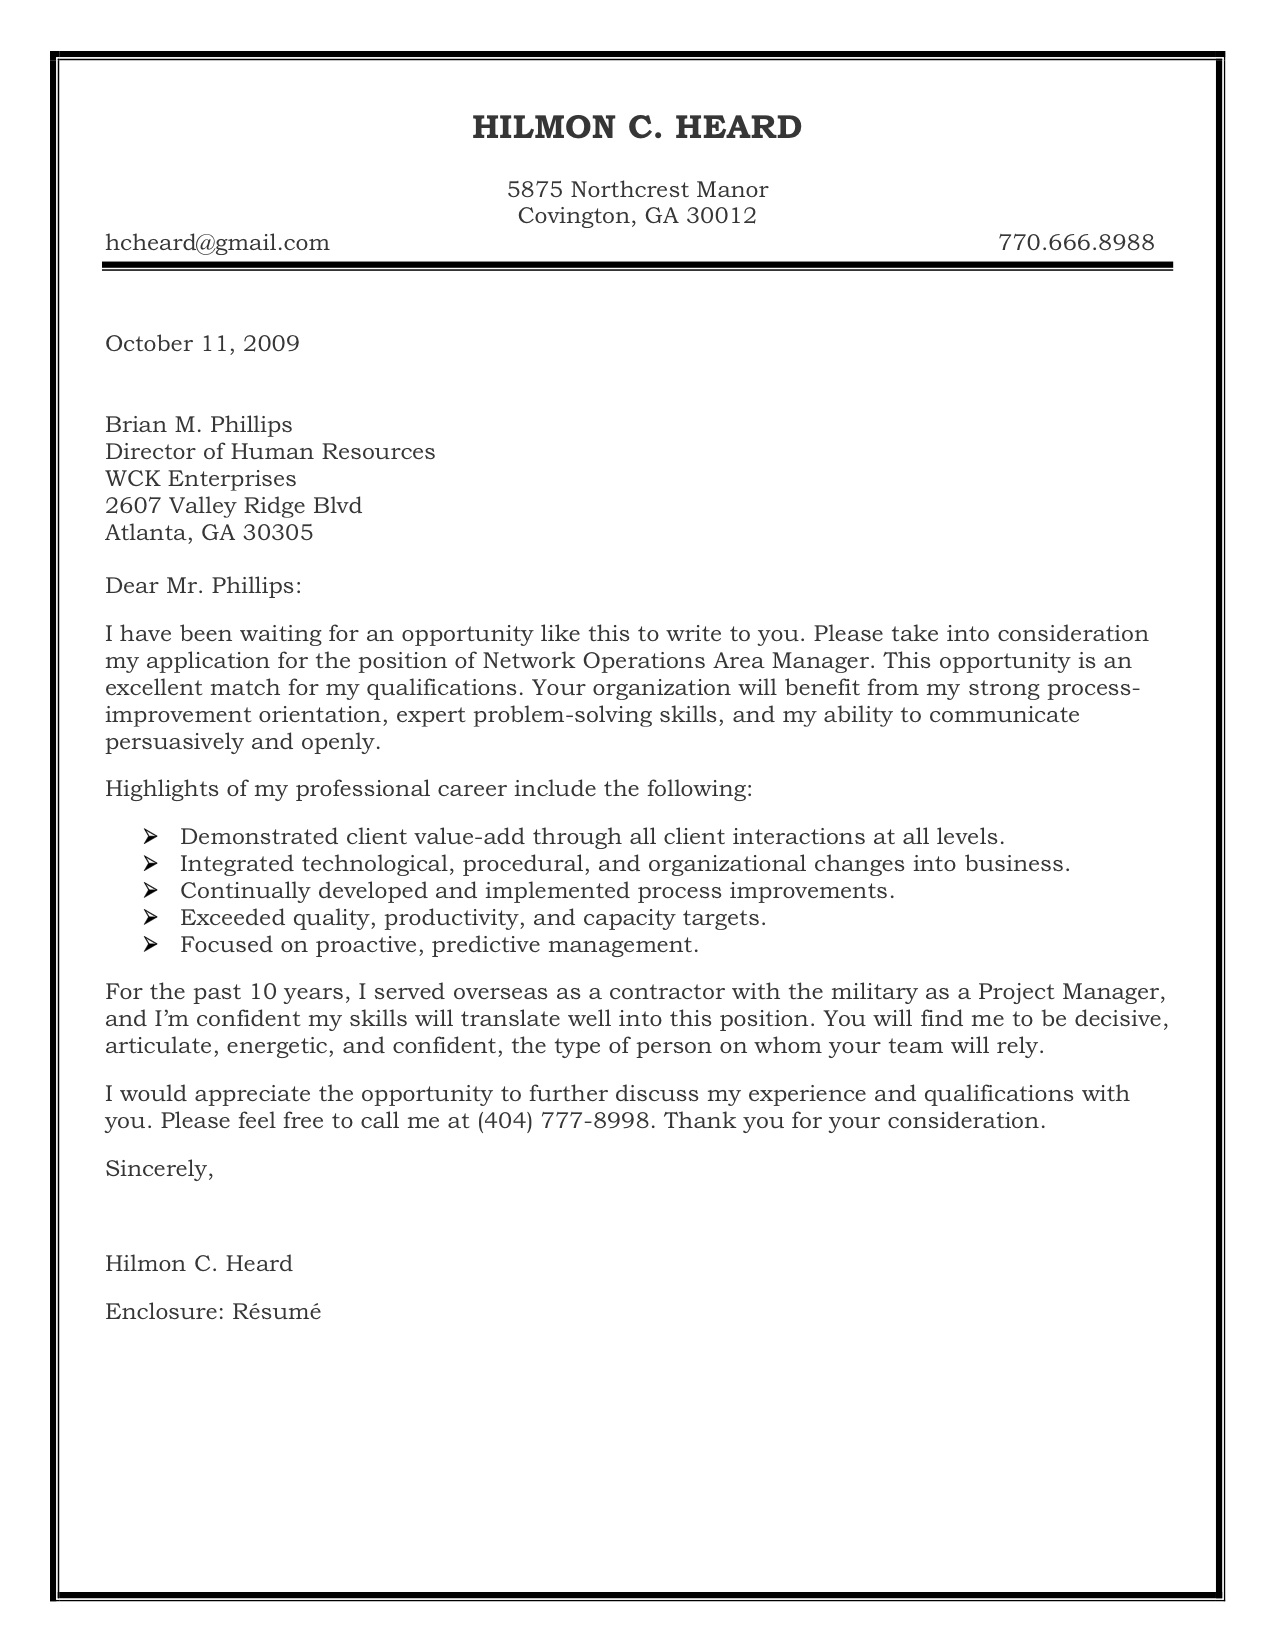 sample cover letter for business analyst internship sample sample cover letter for business analyst internship deloitte cover letter internship business analyst sample cover letter